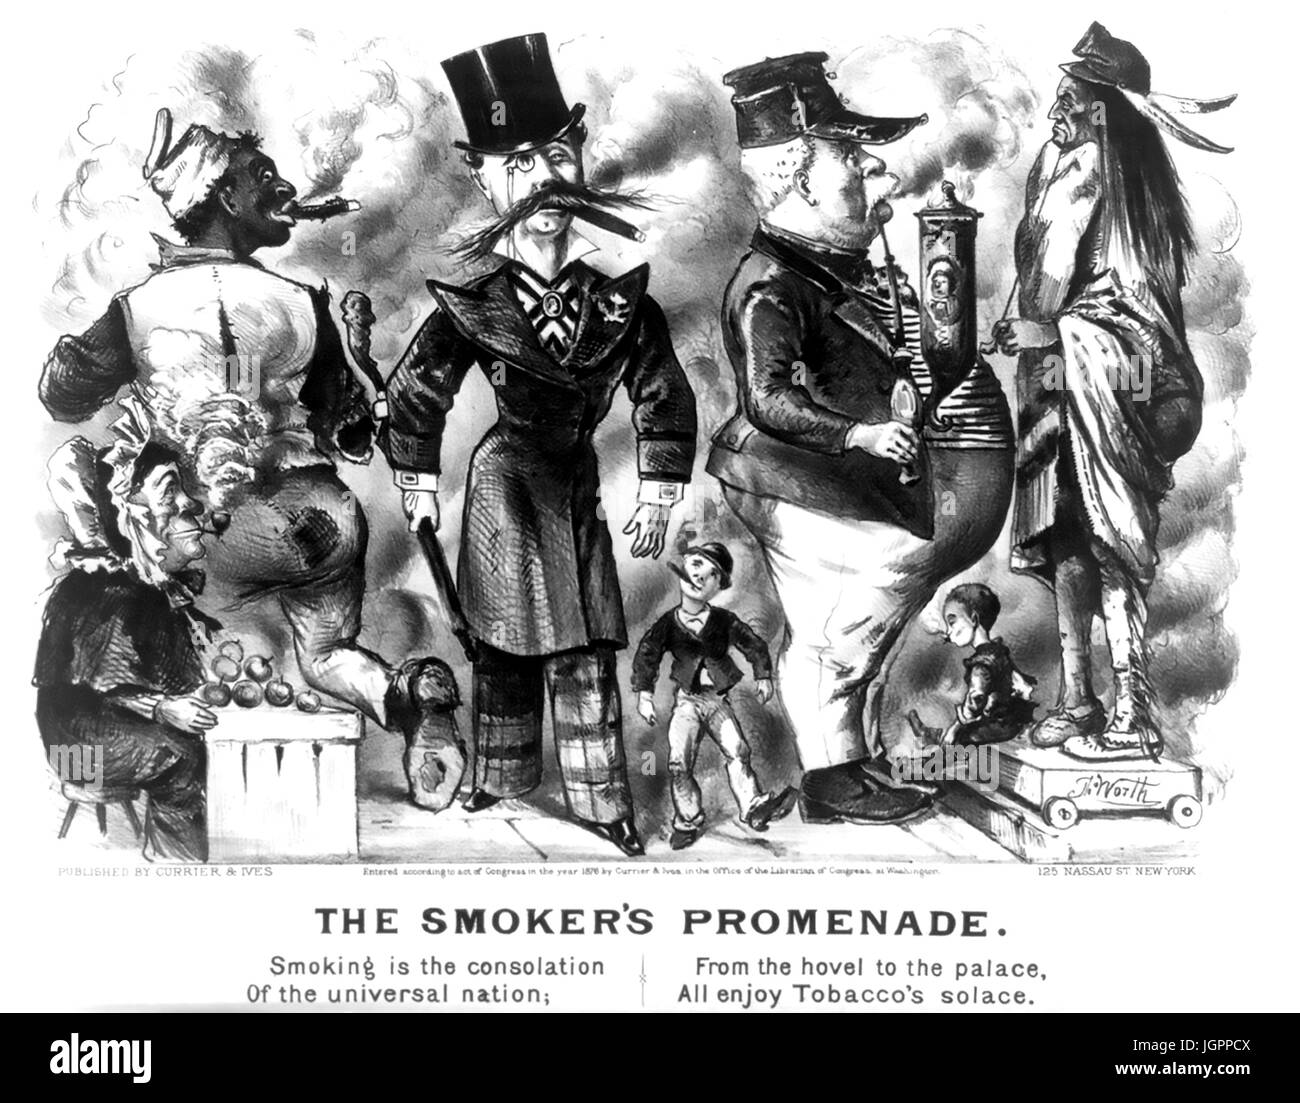 THE SMOKER'S PROMENADE Currier & Ives print about 1875 - Stock Image